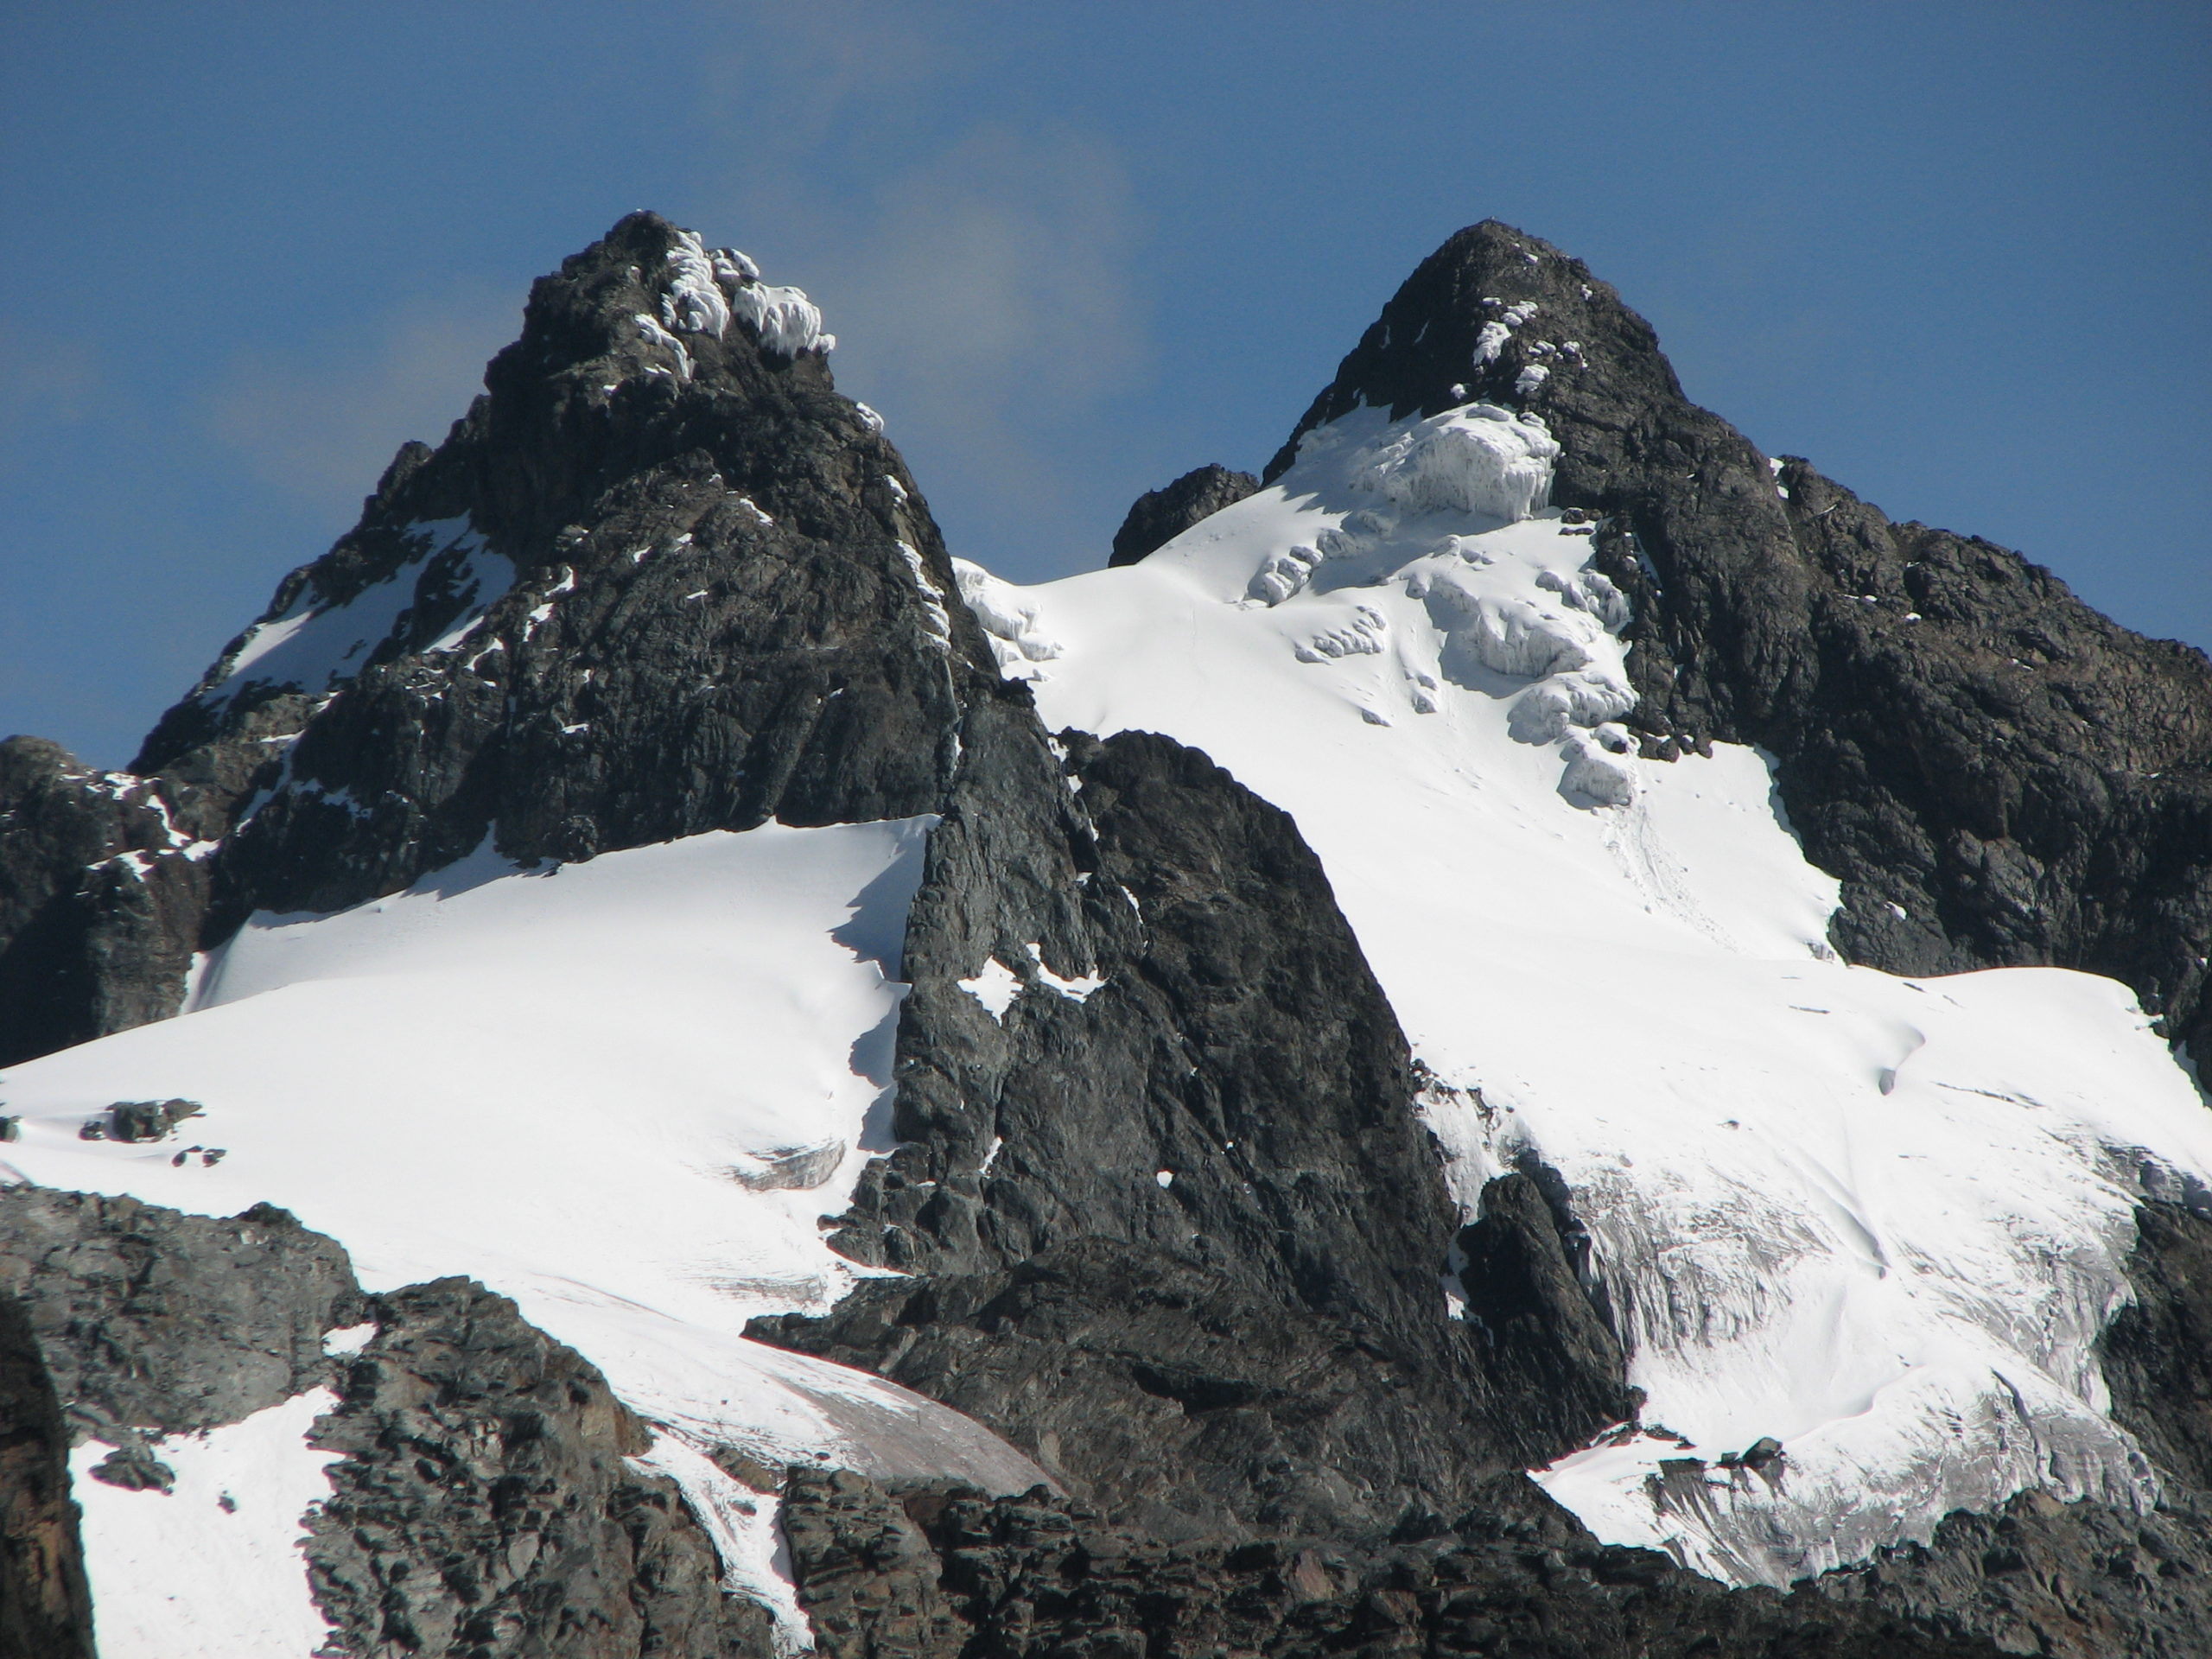 Rwenzori Mountains Trekking in Uganda & Democratic Republic Congo